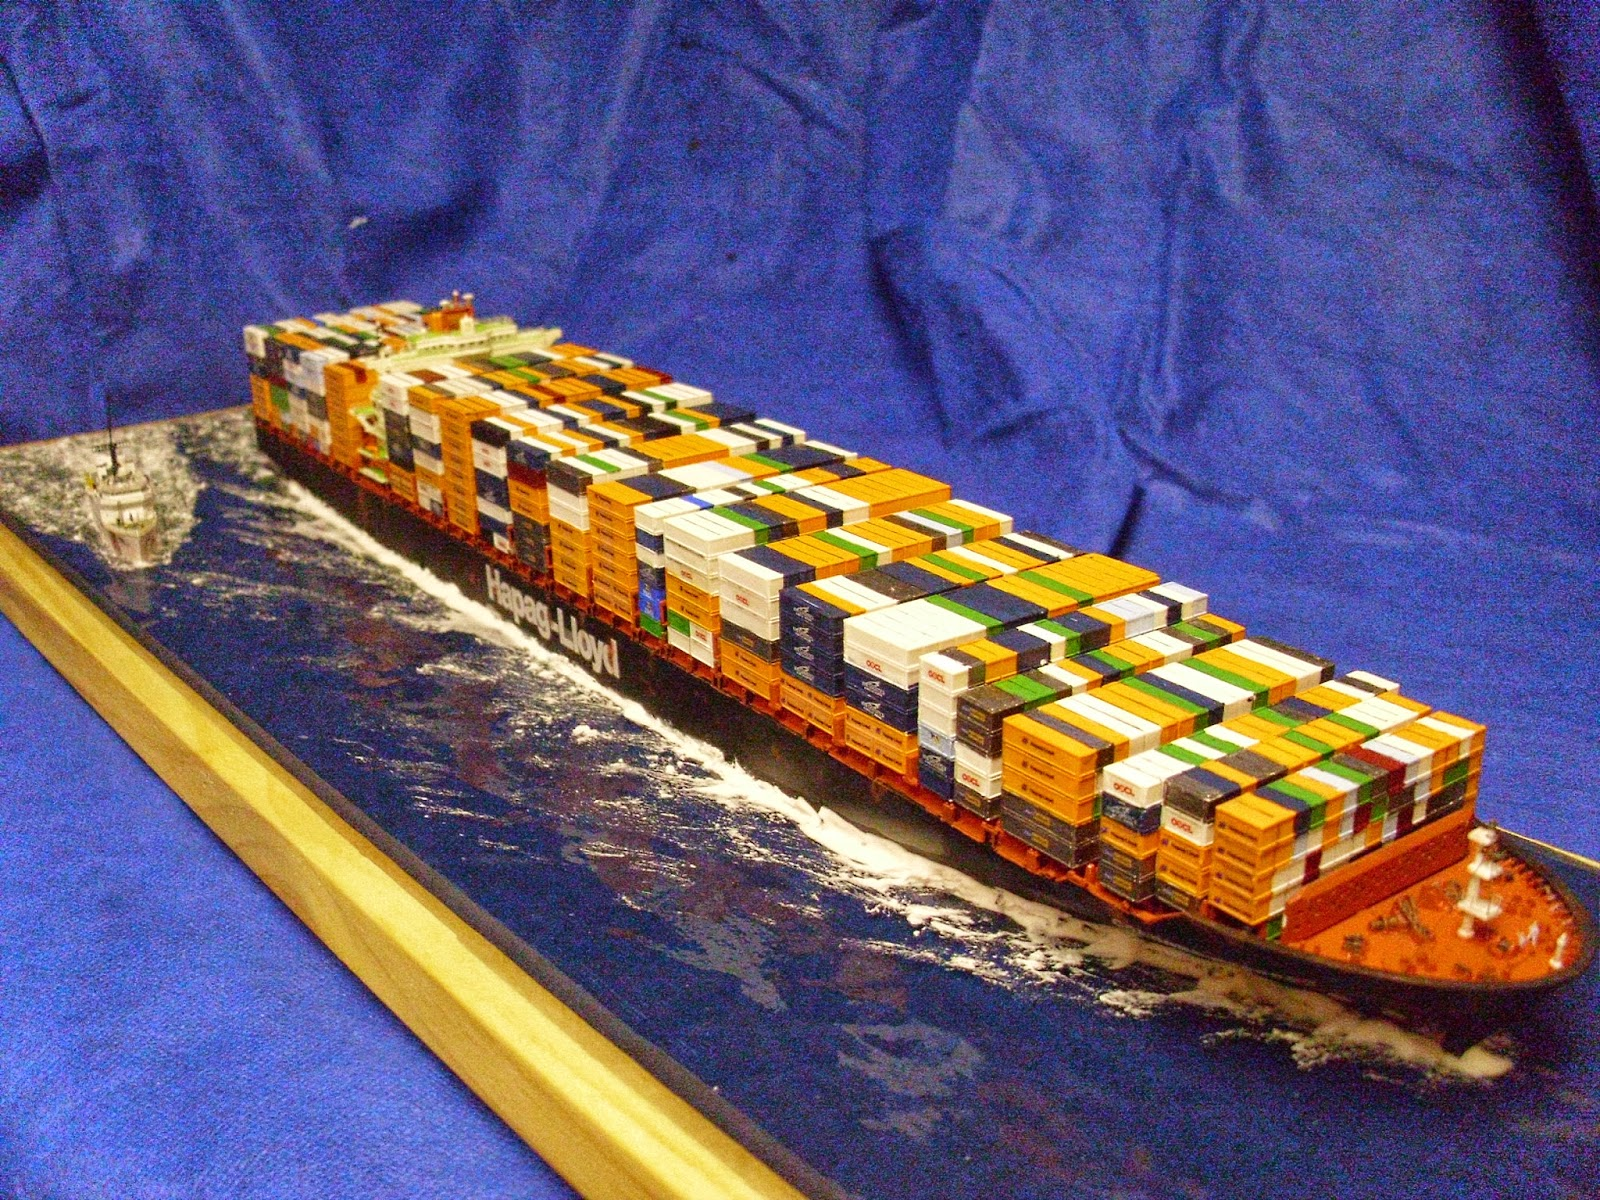 Colombo Scale Containership And Uscg 270 39 Cutter Final Pics Finescale